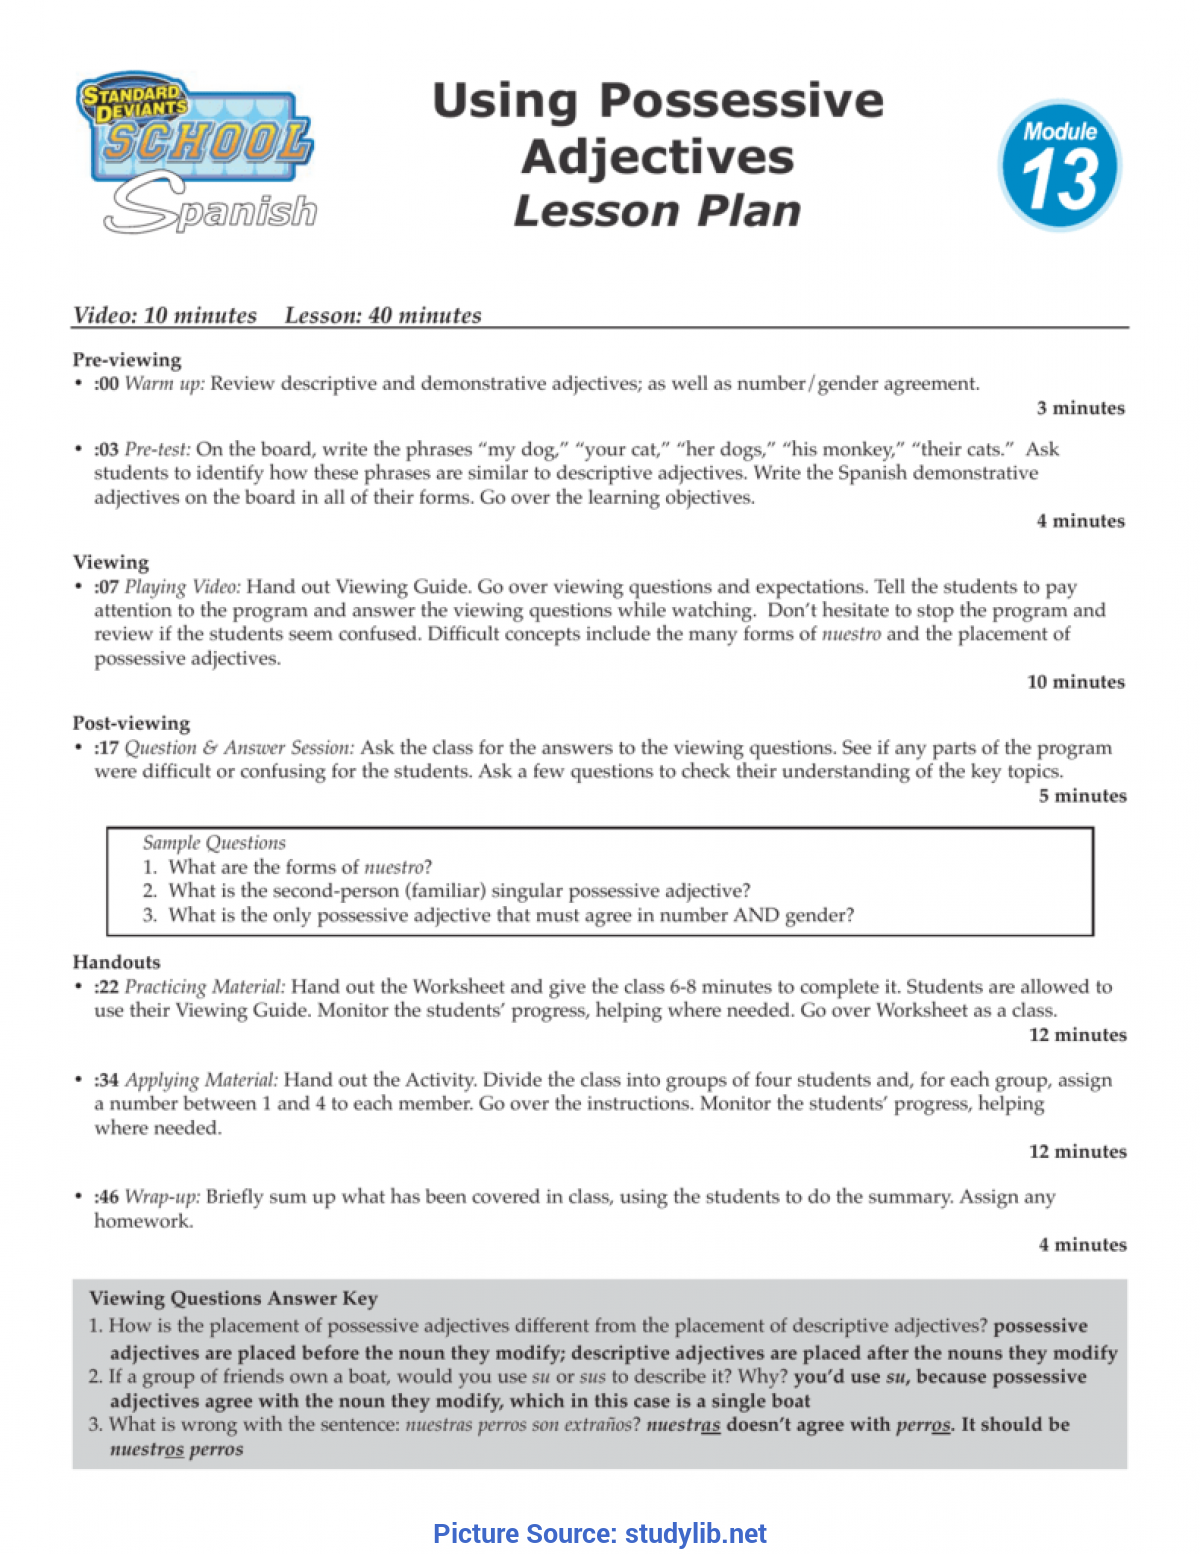 Good Lesson Plan Objectives Adjectives Using Possessive Adject